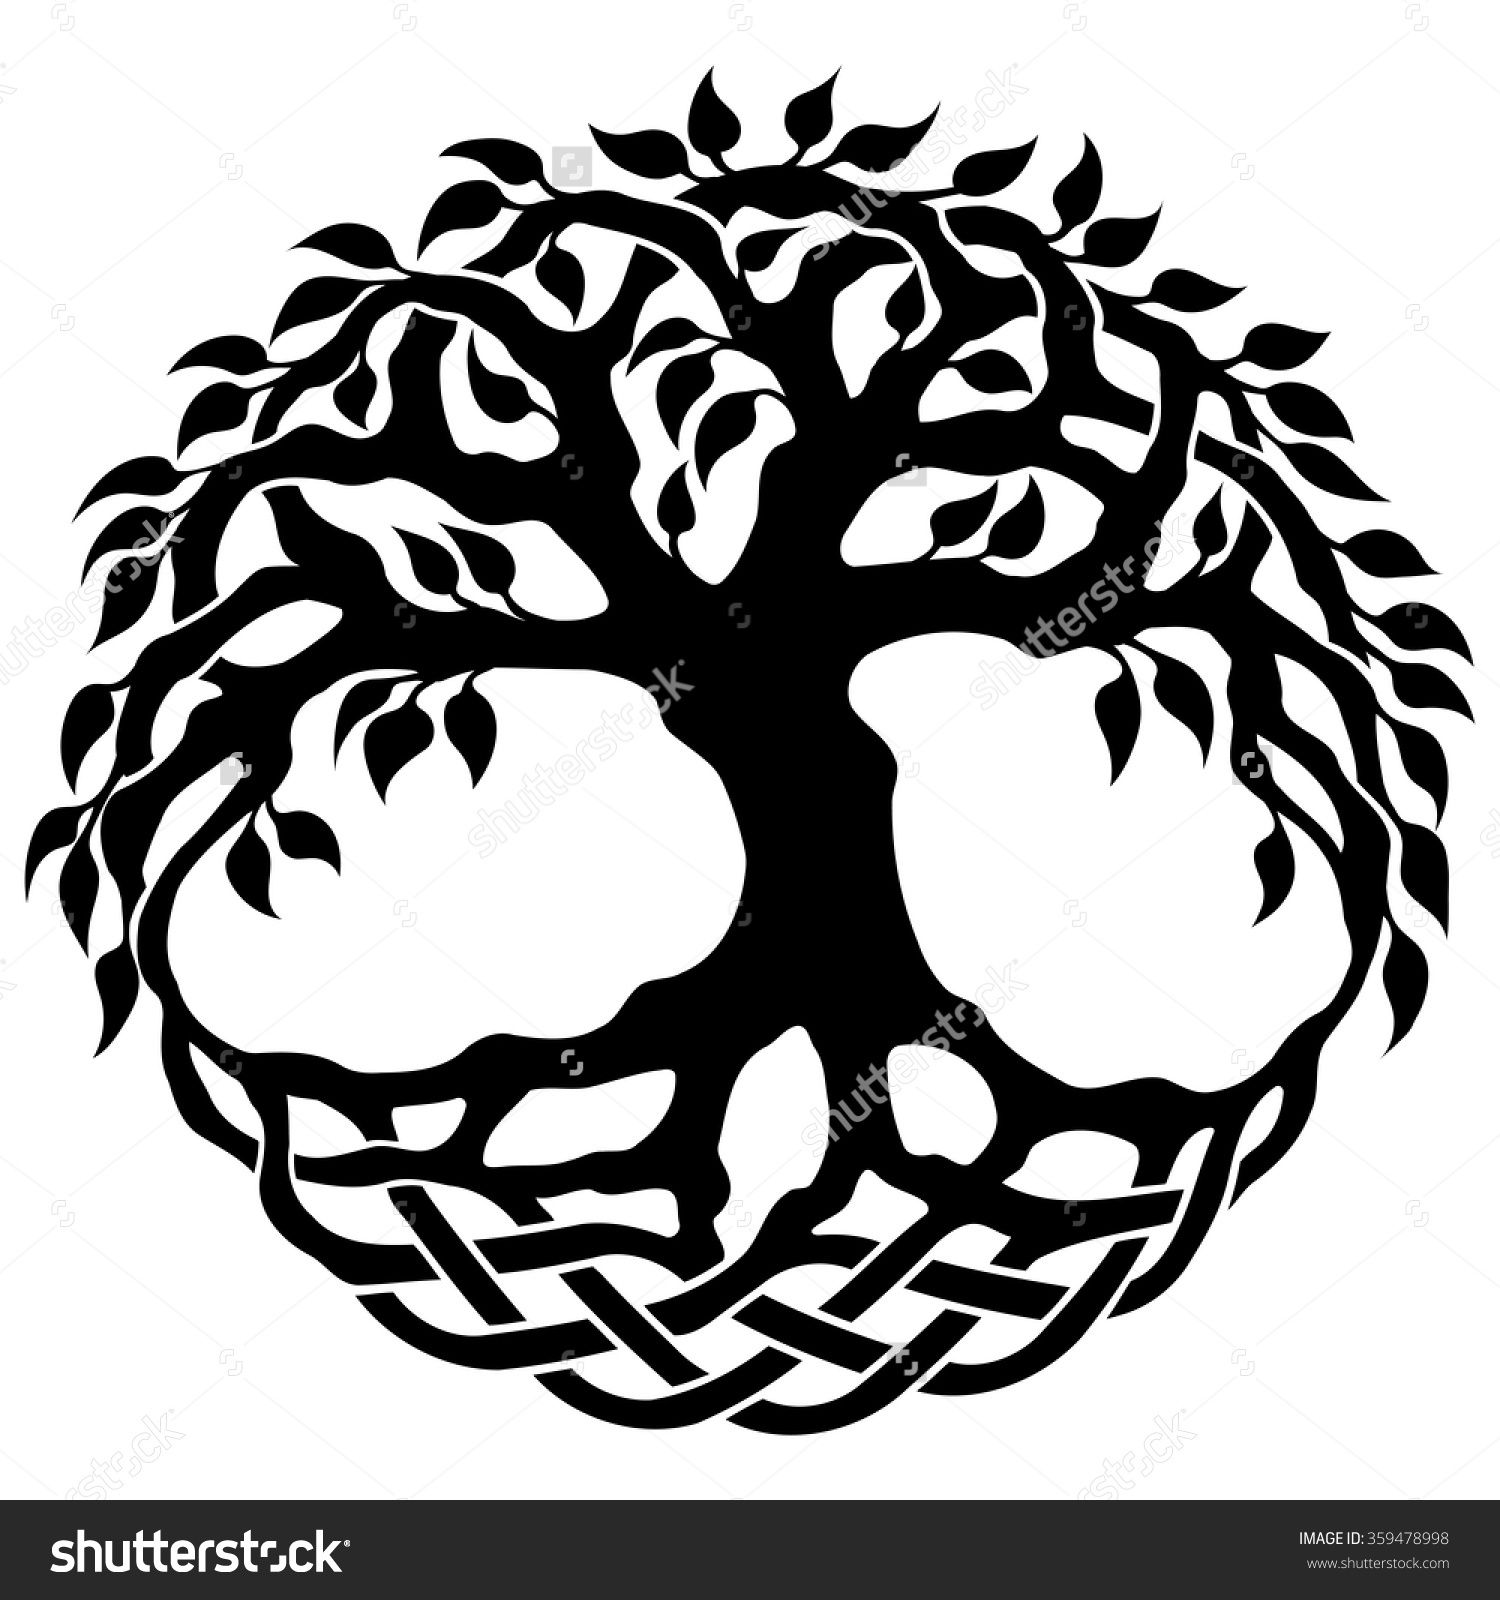 Vector Ornament, Decorative Celtic Tree Of Life - 359478998 ... vector black and white